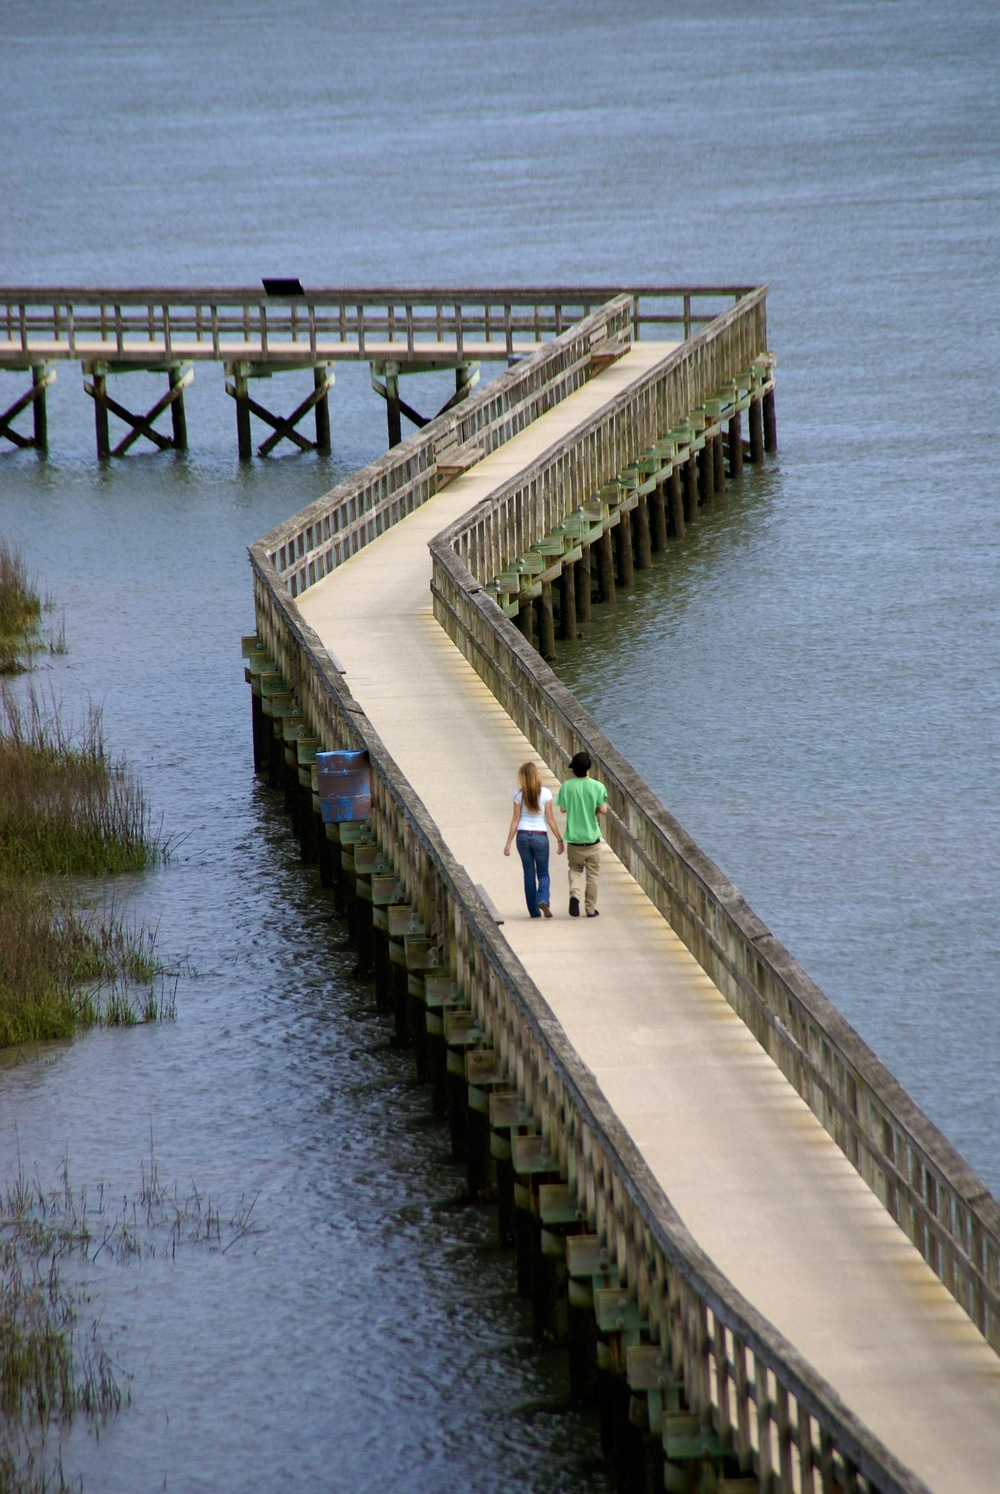 The boardwalk at The Sands in Port Royal offers access to the markslands and waterways that make the Sea Islands so unique.